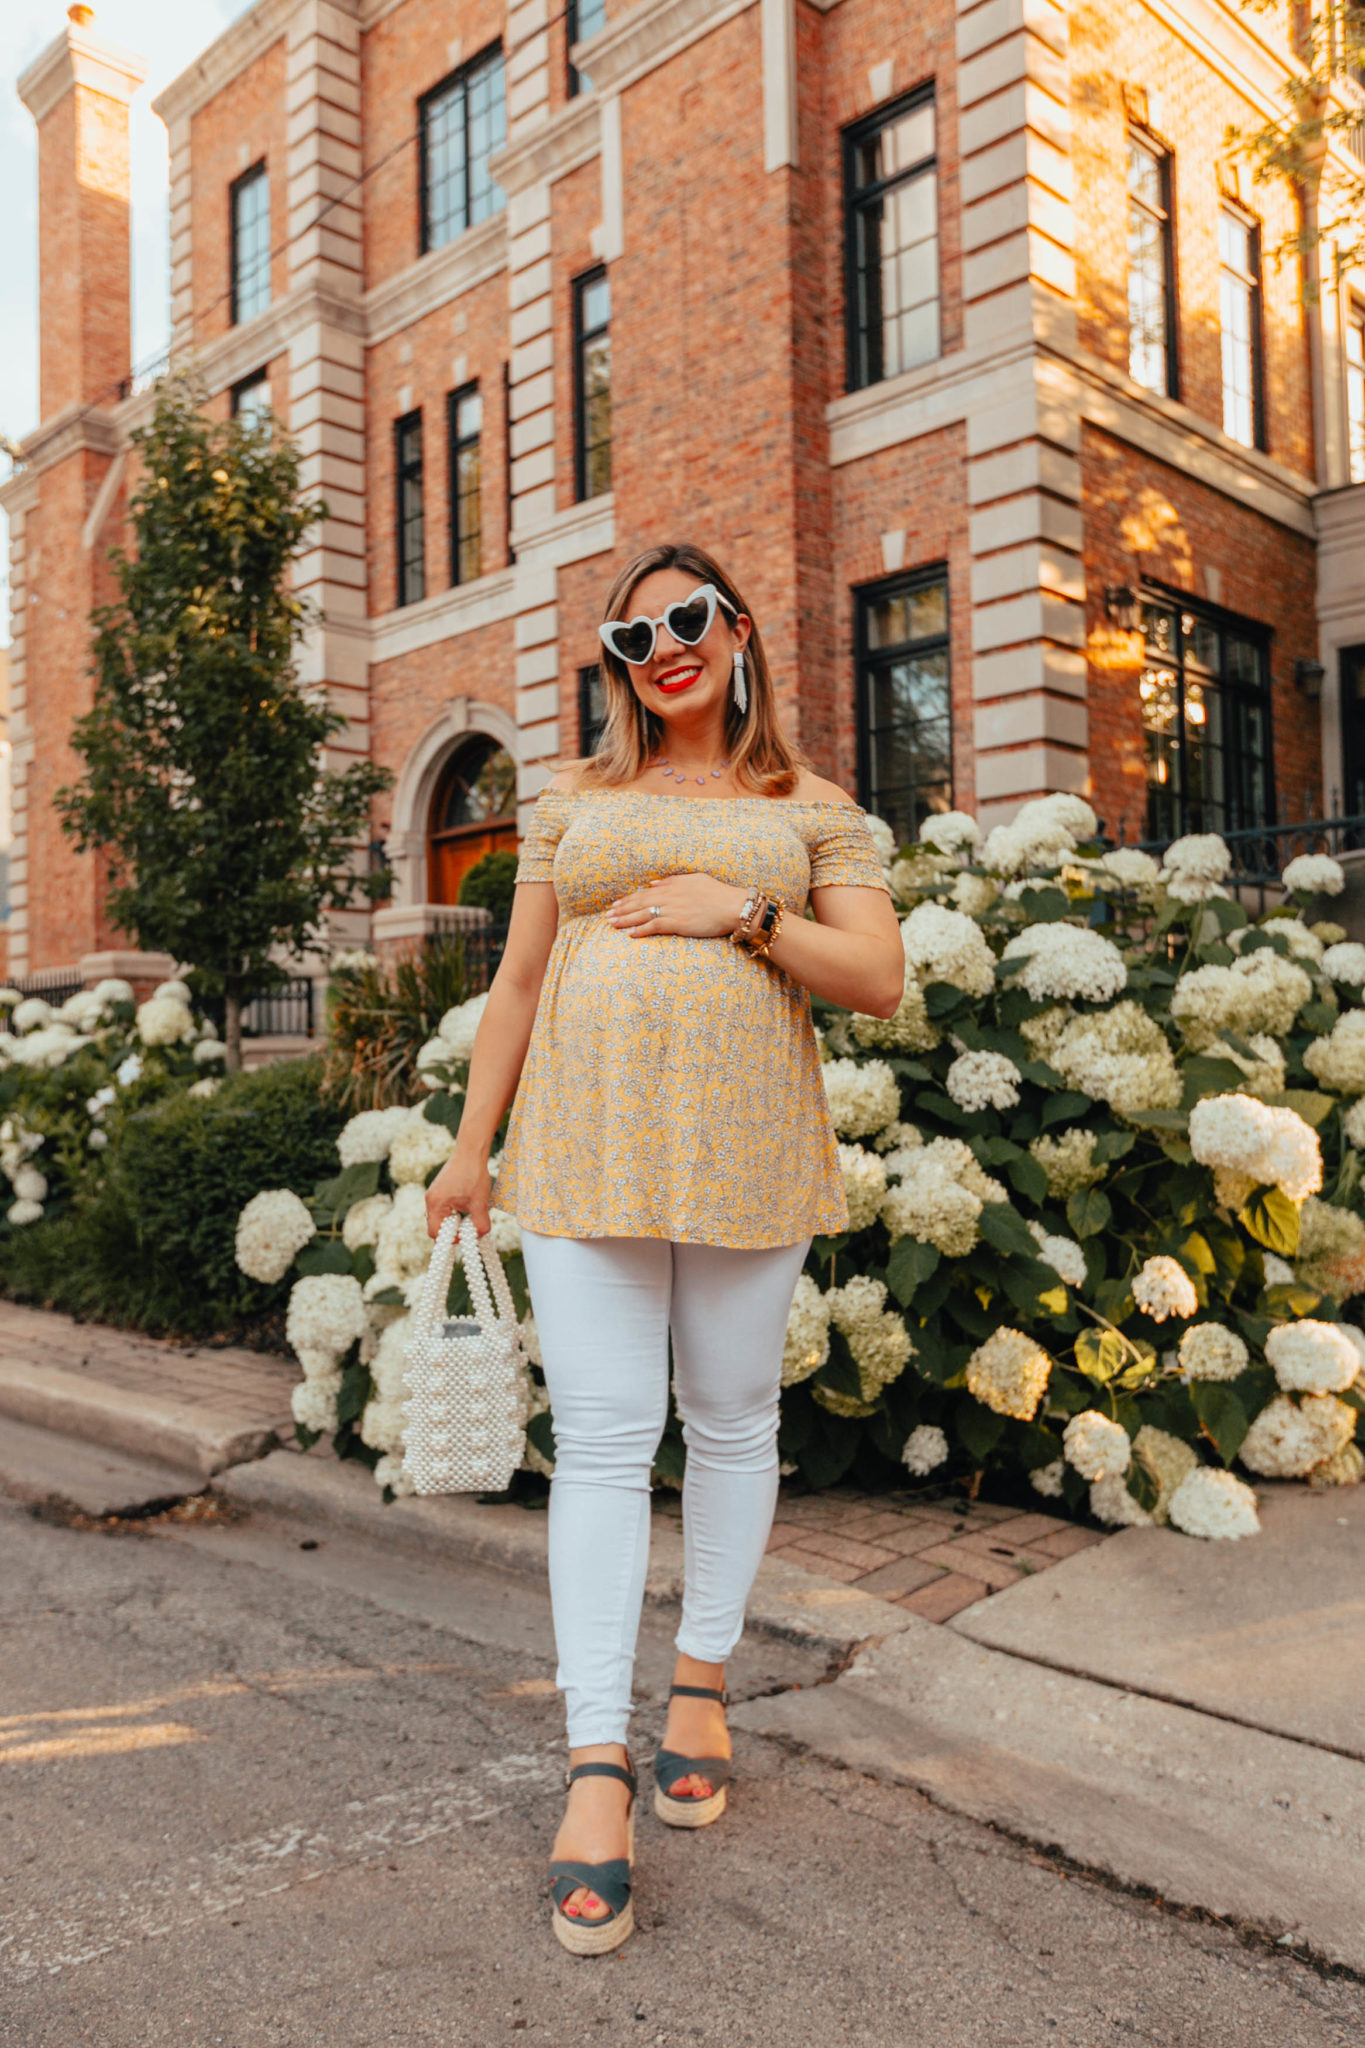 Summer maternity outfit featured by top US fashion log, Glass of Glam: image of a pregnant woman wearing an Ingrid & Isabel off the shoulder flower top, Old Nave Maternity white denim, Castaner low wedges, Miuco pearl tote bag, Kendra Scott necklace, SUGARFIX beaded earrings, and MINCL heart sunglasses.